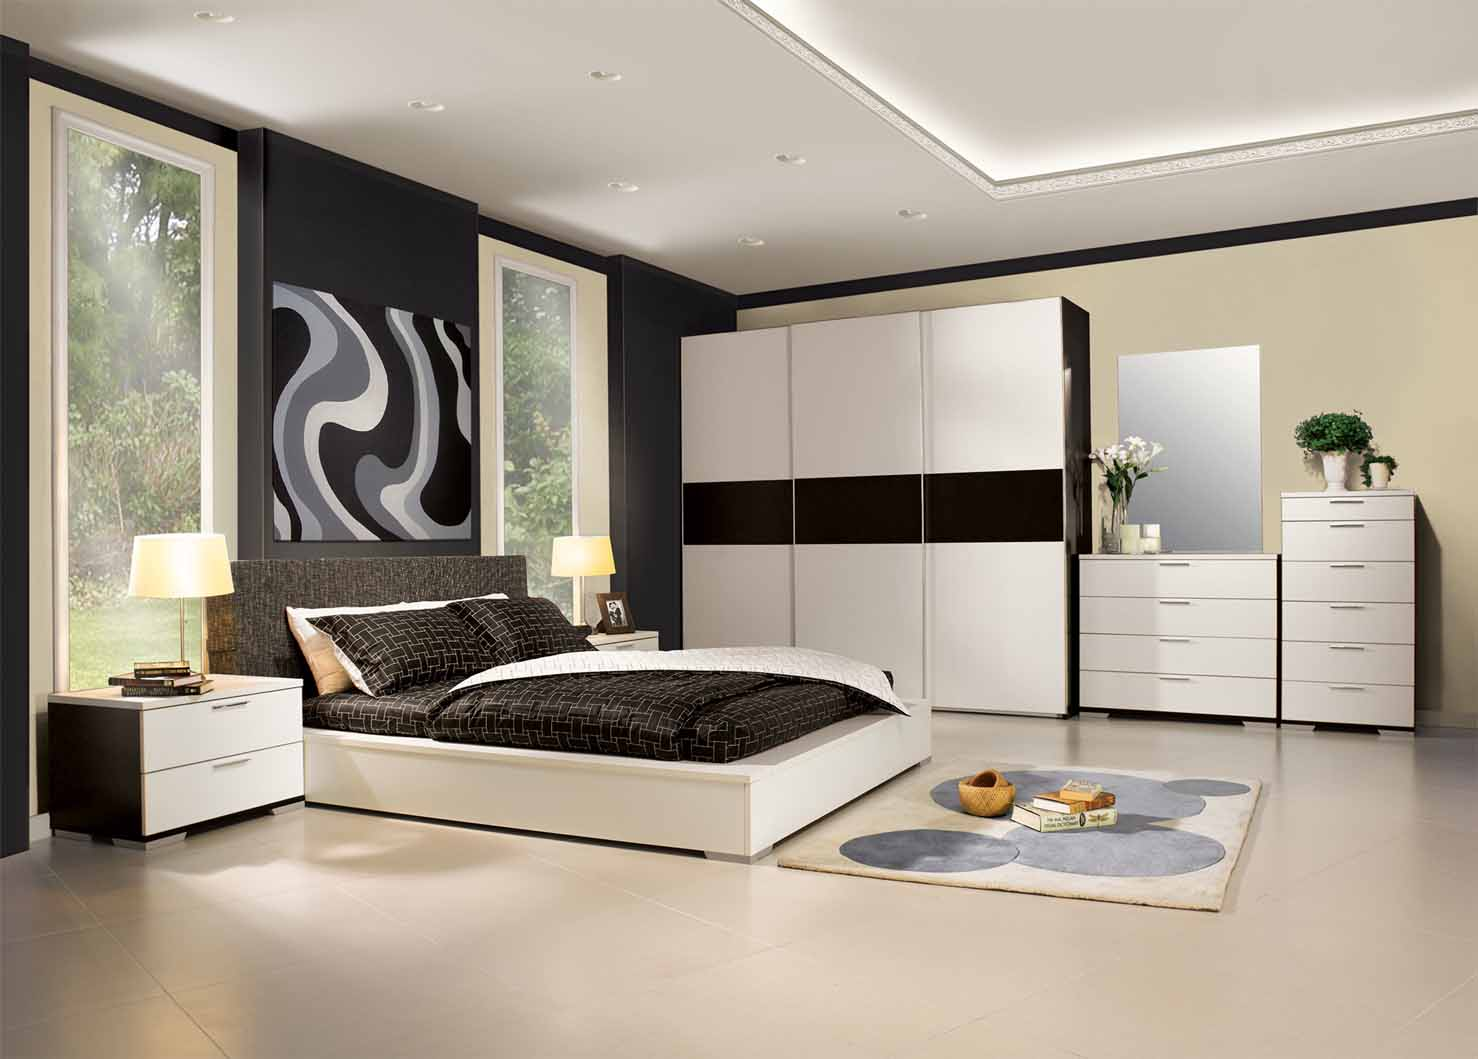 Awesome bedrooms ideas pictures 2014 decorating bedrooms for Pics of bedroom designs